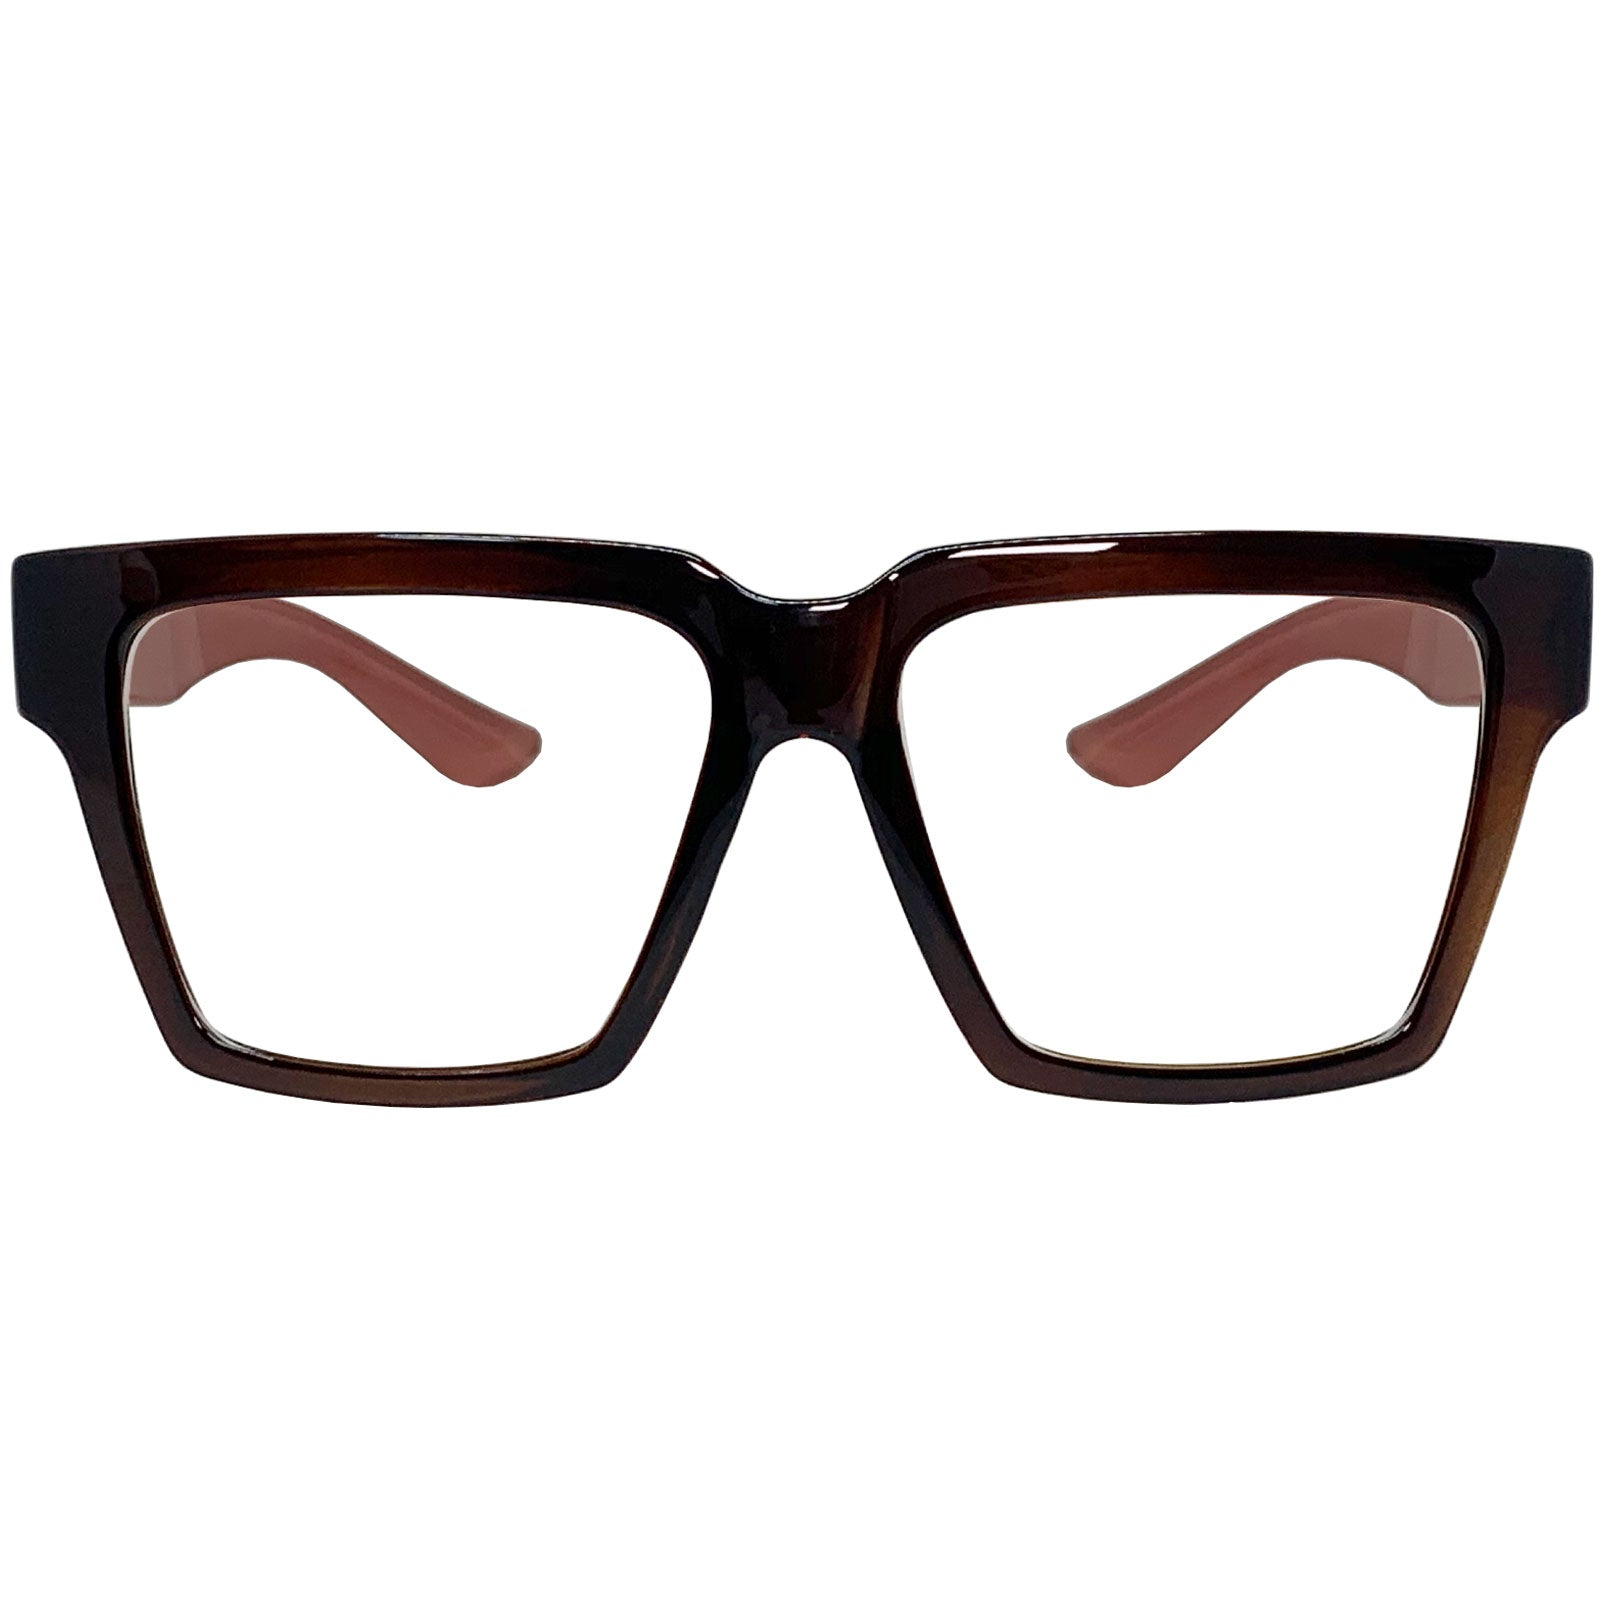 Super Oversize Eyeglasses Frame KS373 Brown